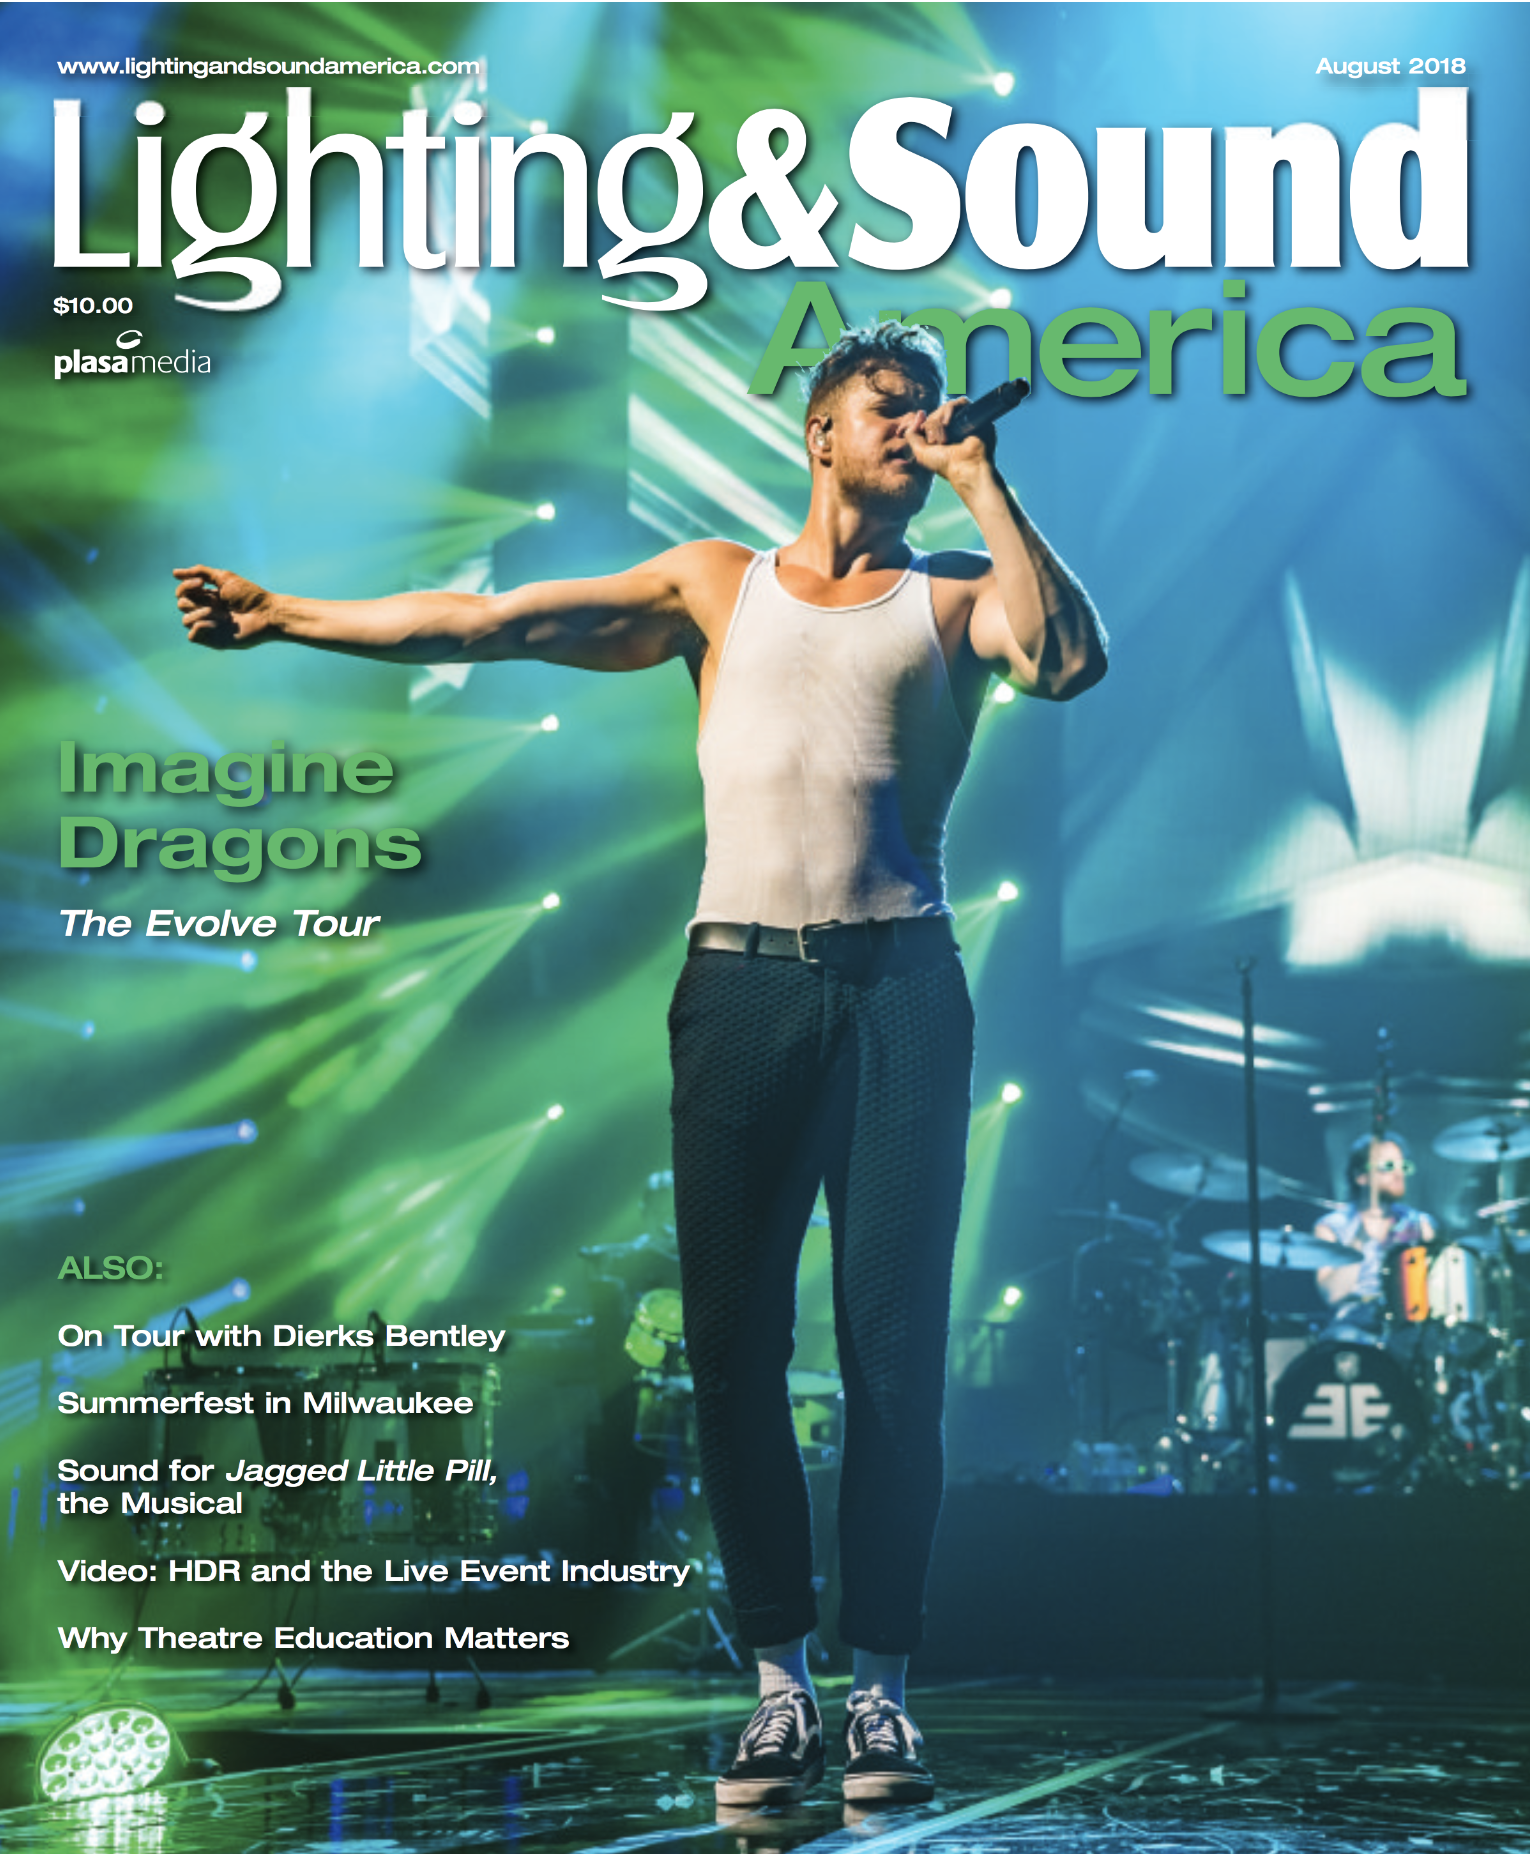 LSA_Cover_AUG2018.png